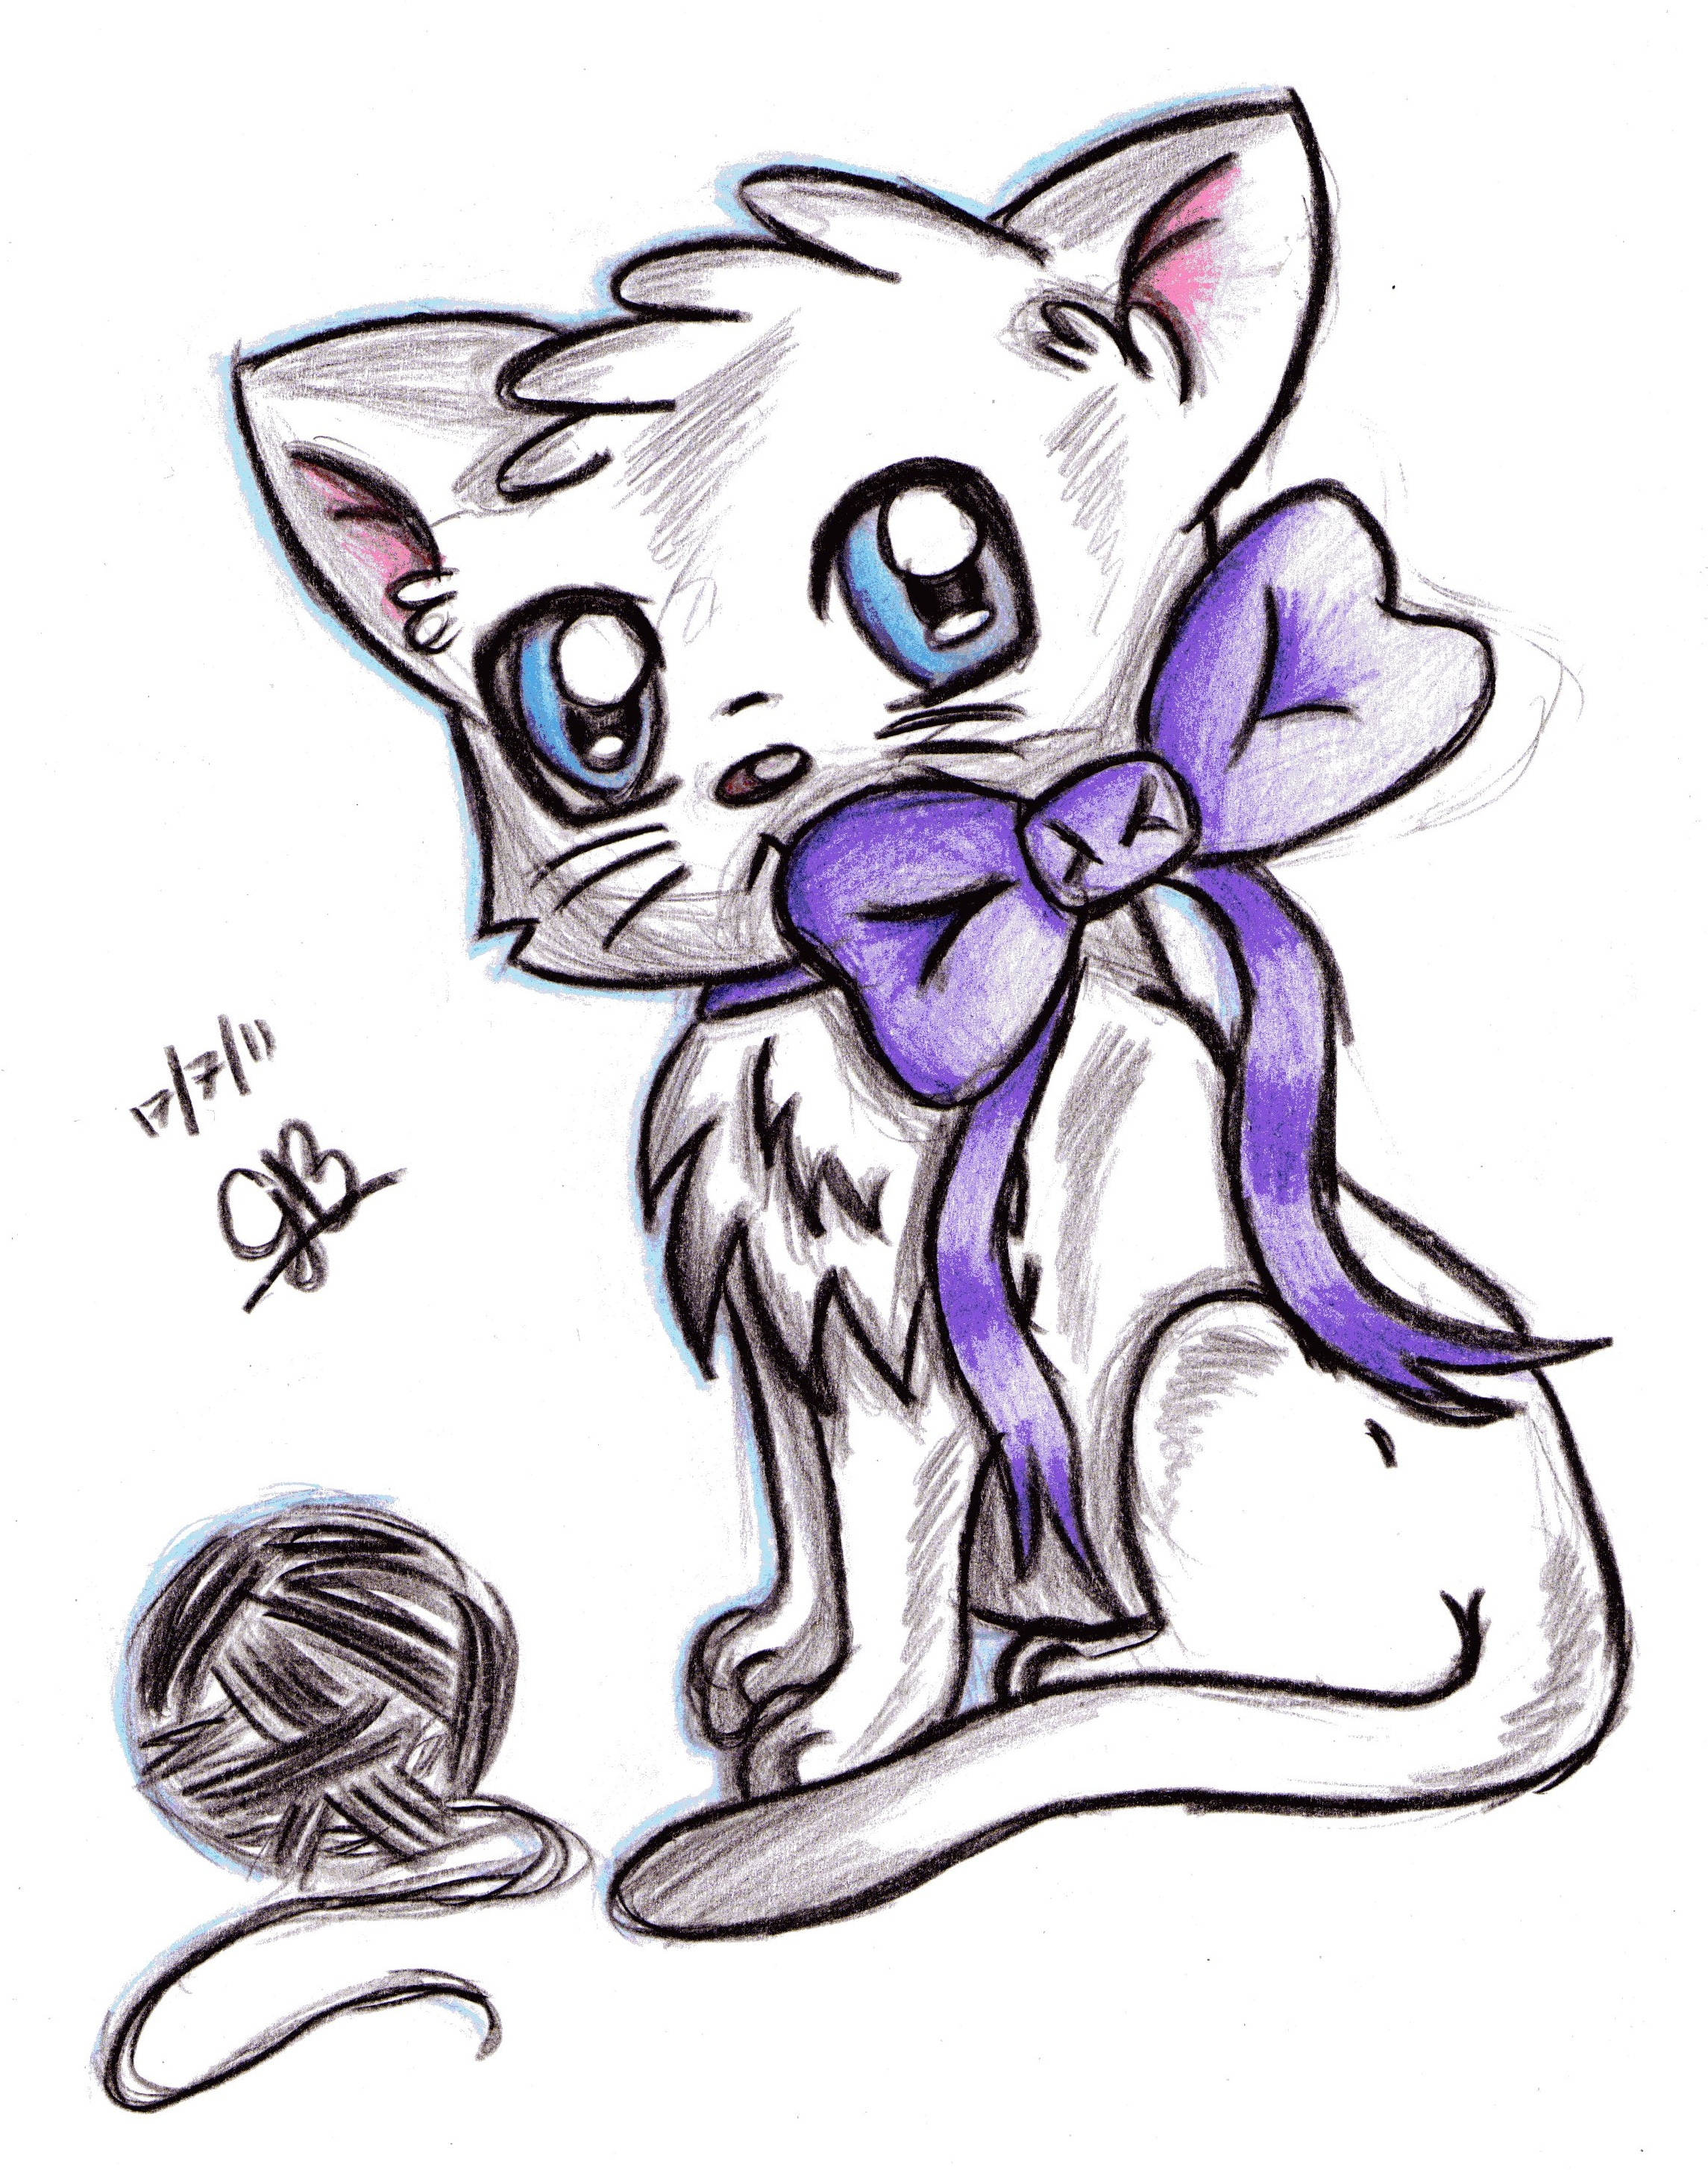 2290x2909 Drawings Of Anime Cats Drawings Of Anime Cats Anime Chibi Cat